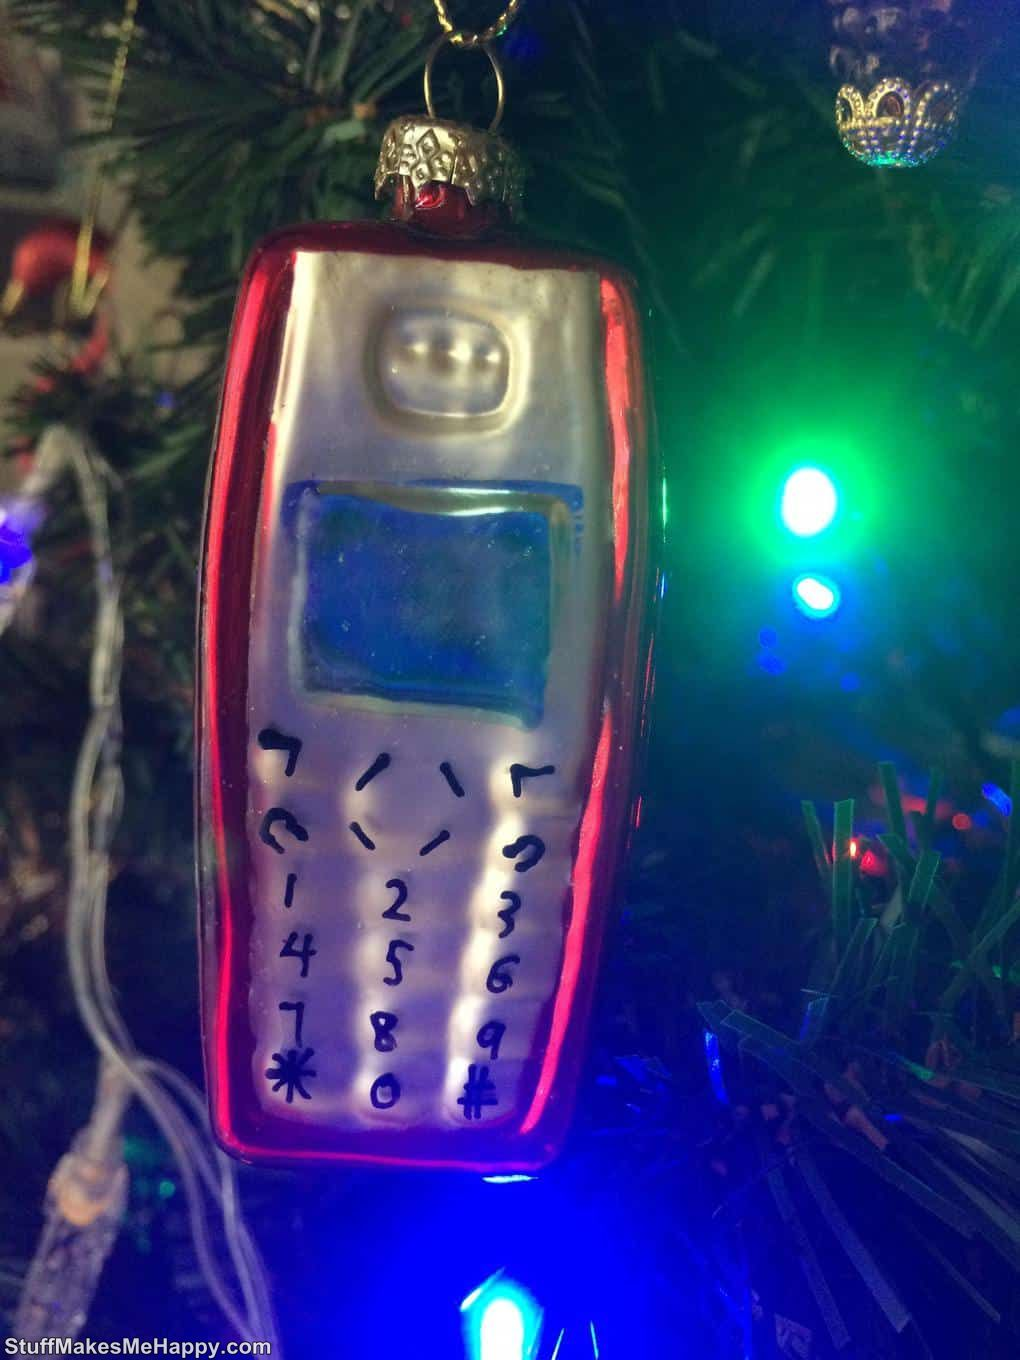 14. The old phone turns ... into a Christmas tree toy!